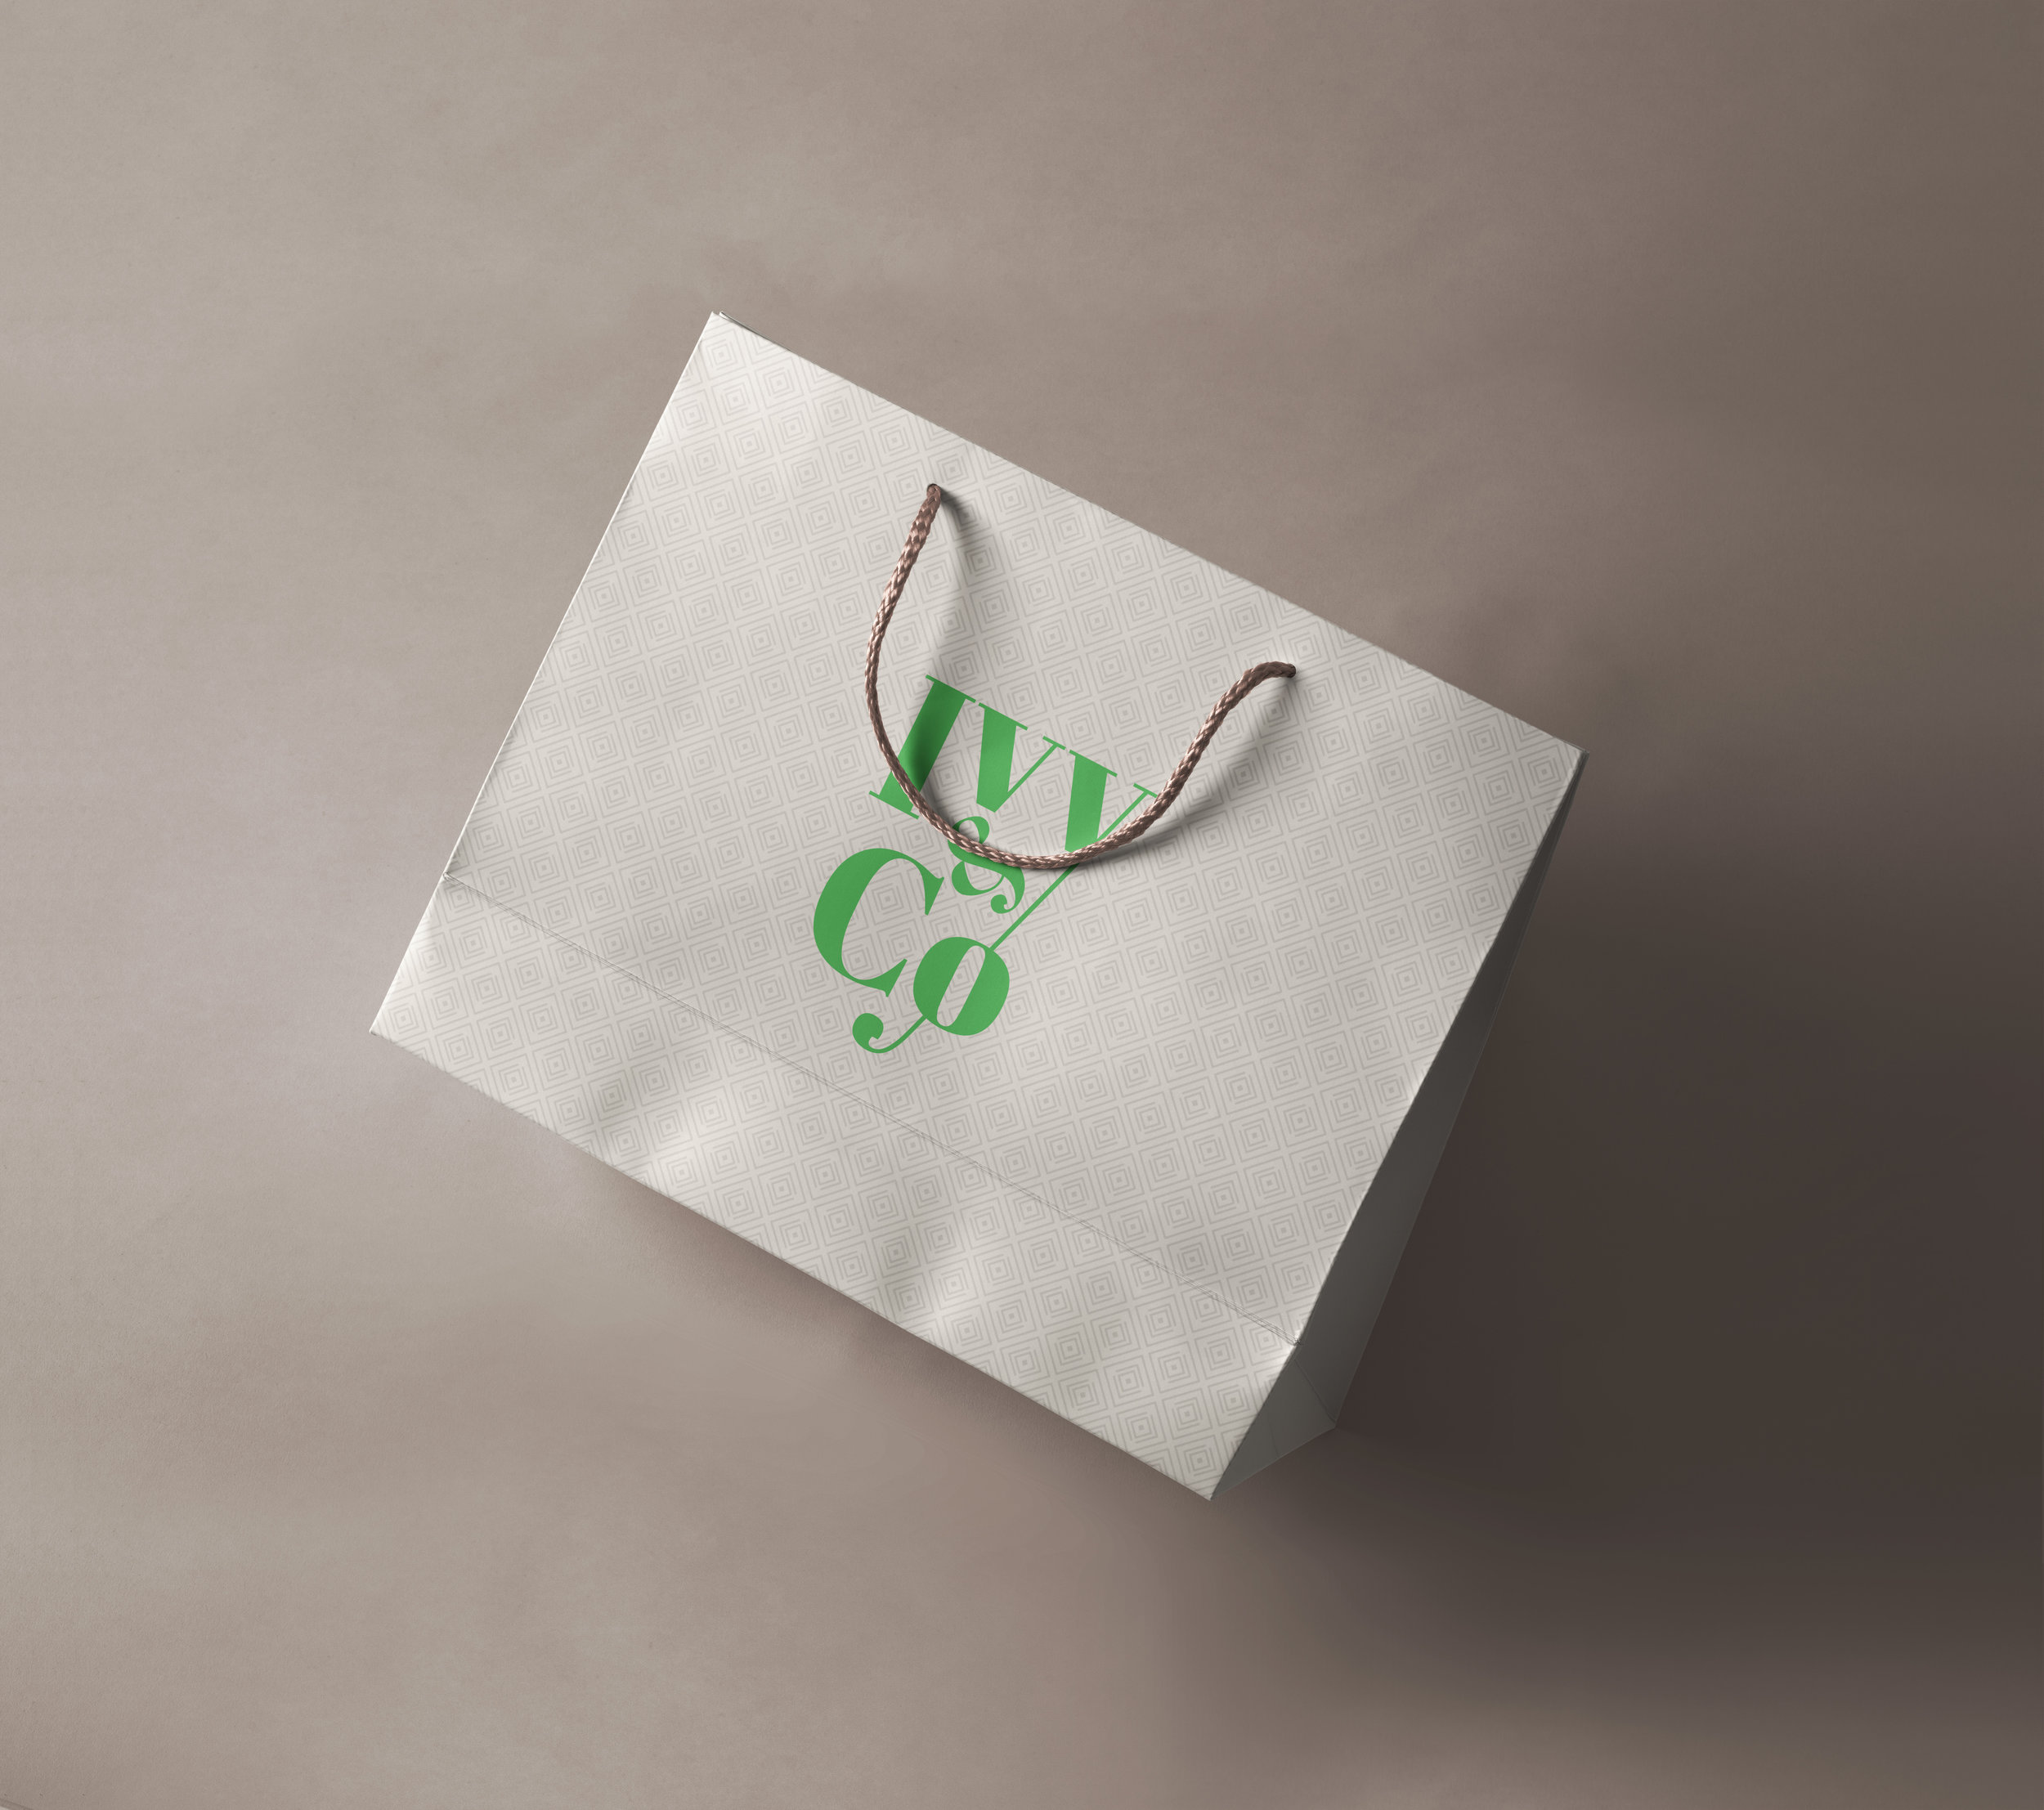 ivyandco logo-on-bag.jpg